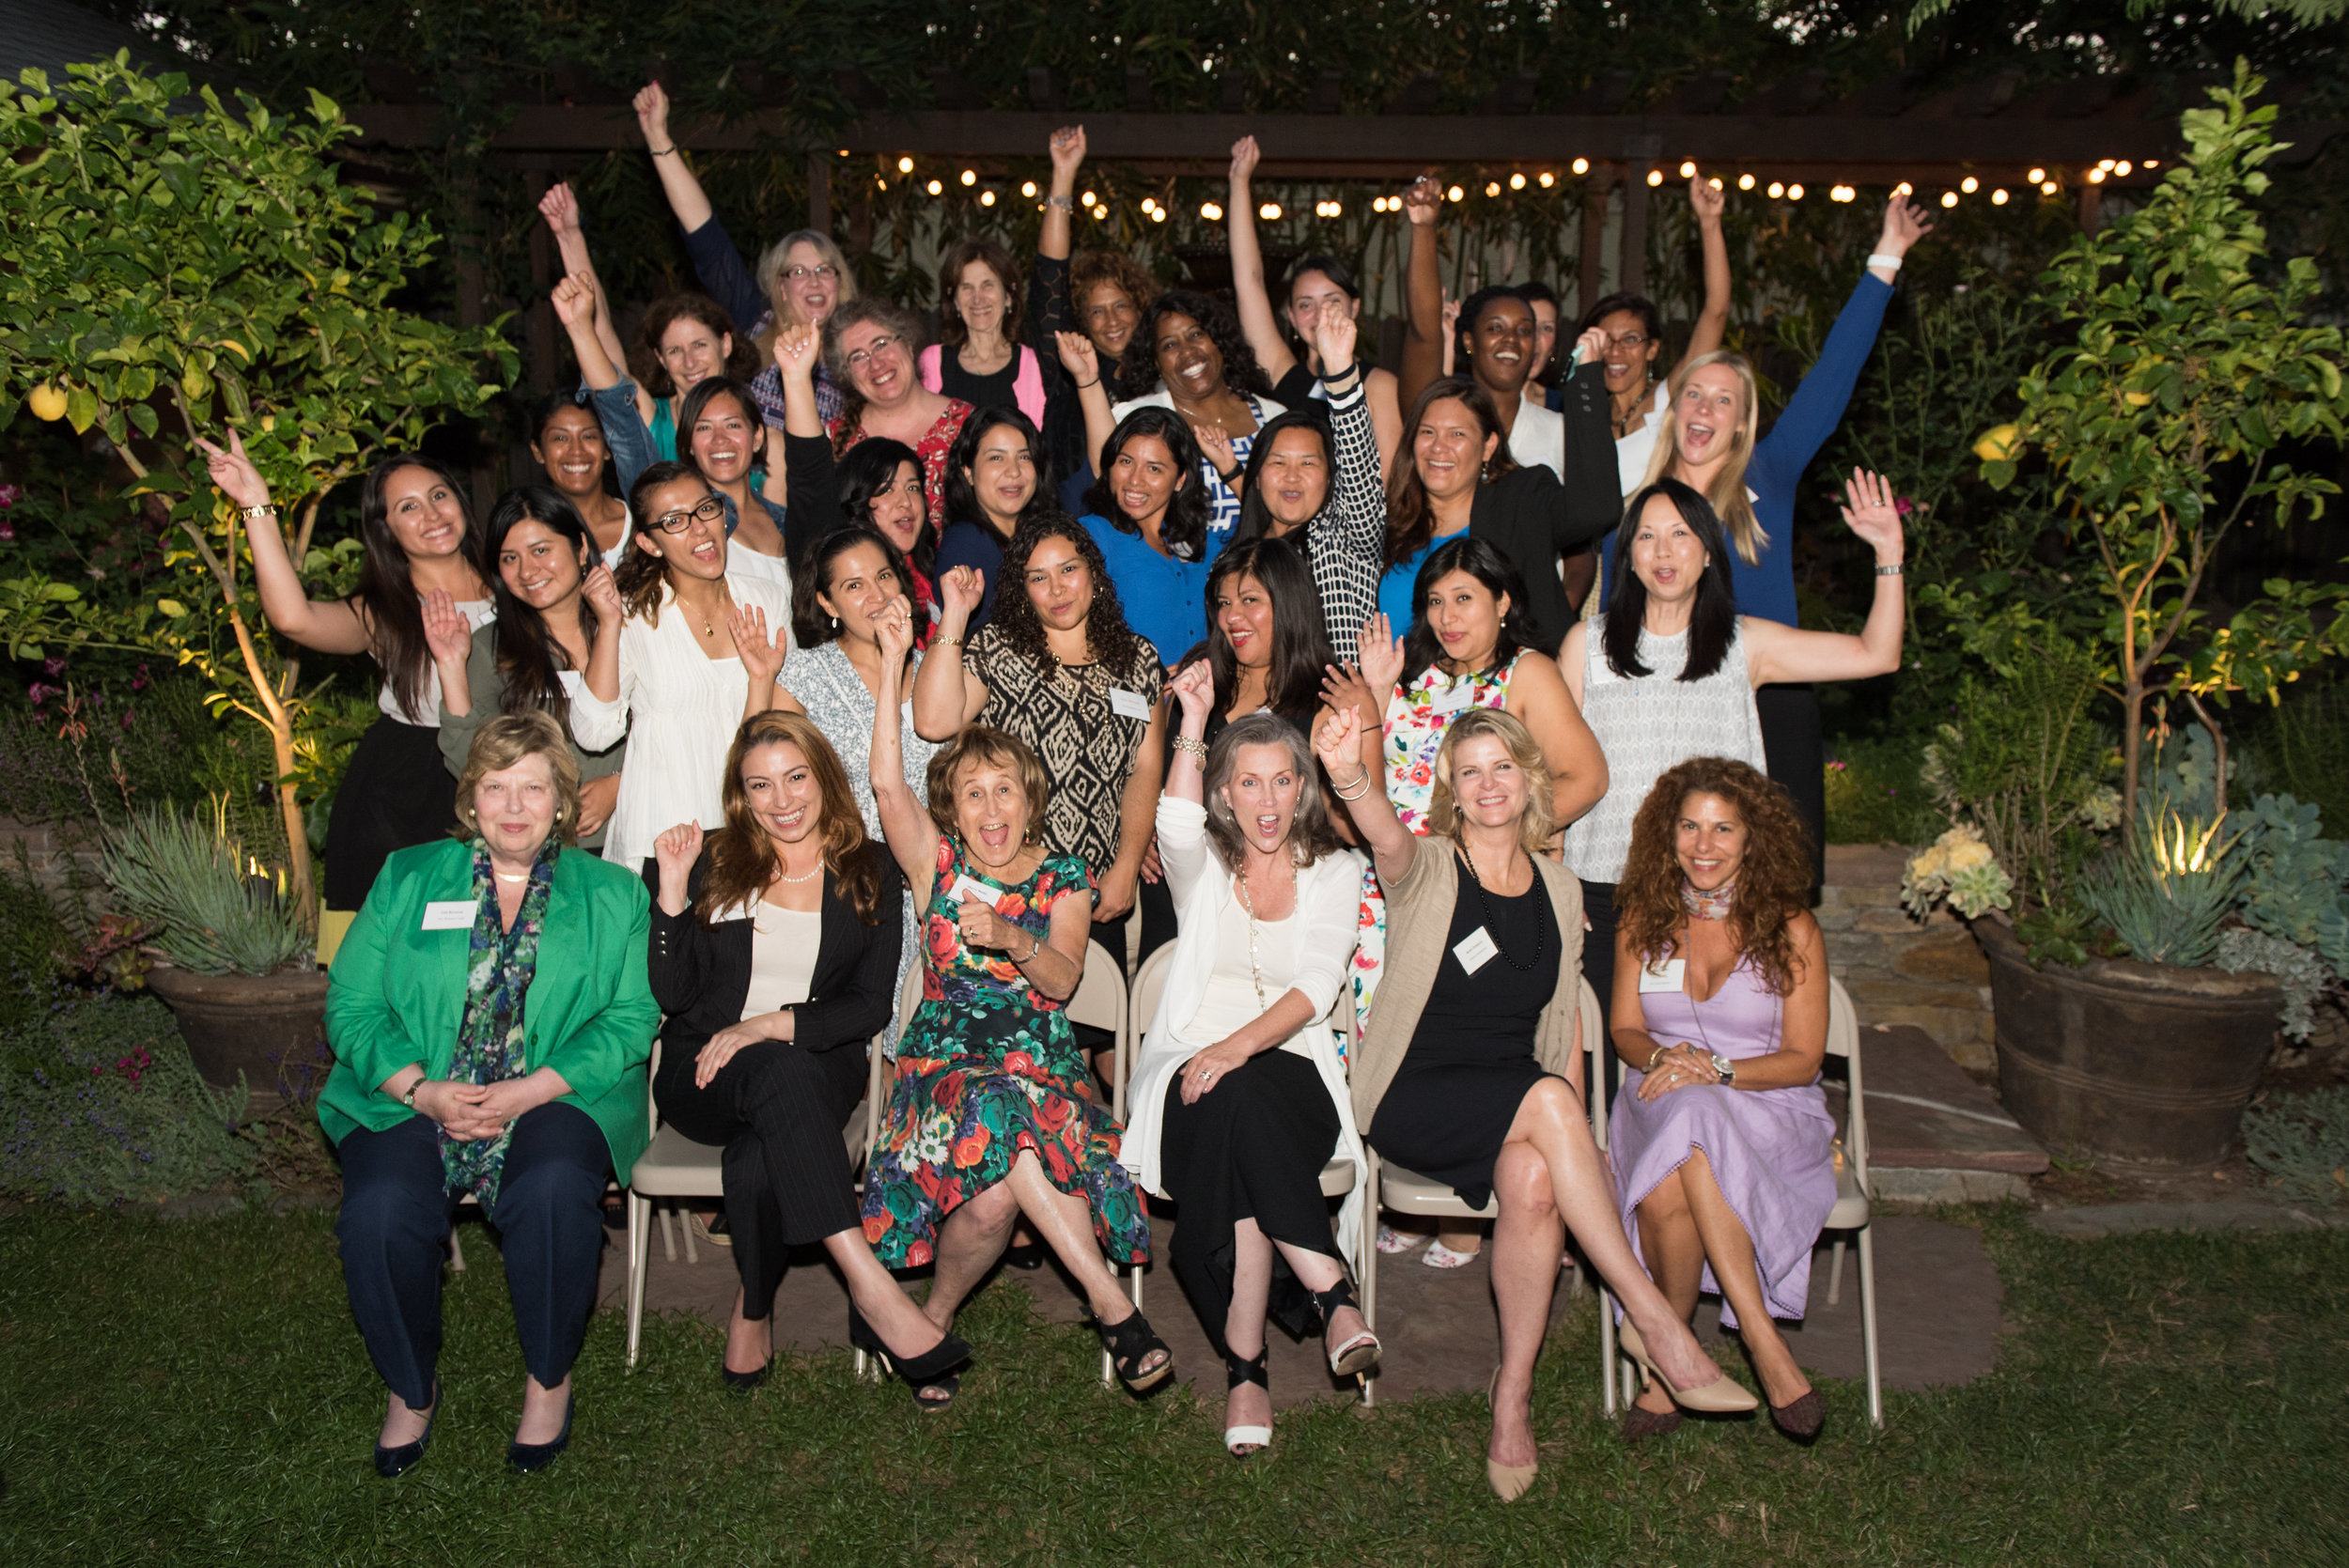 July 2015 - The 10th anniversary of the WLC and Fulfillment Fund Mentoring Partnership